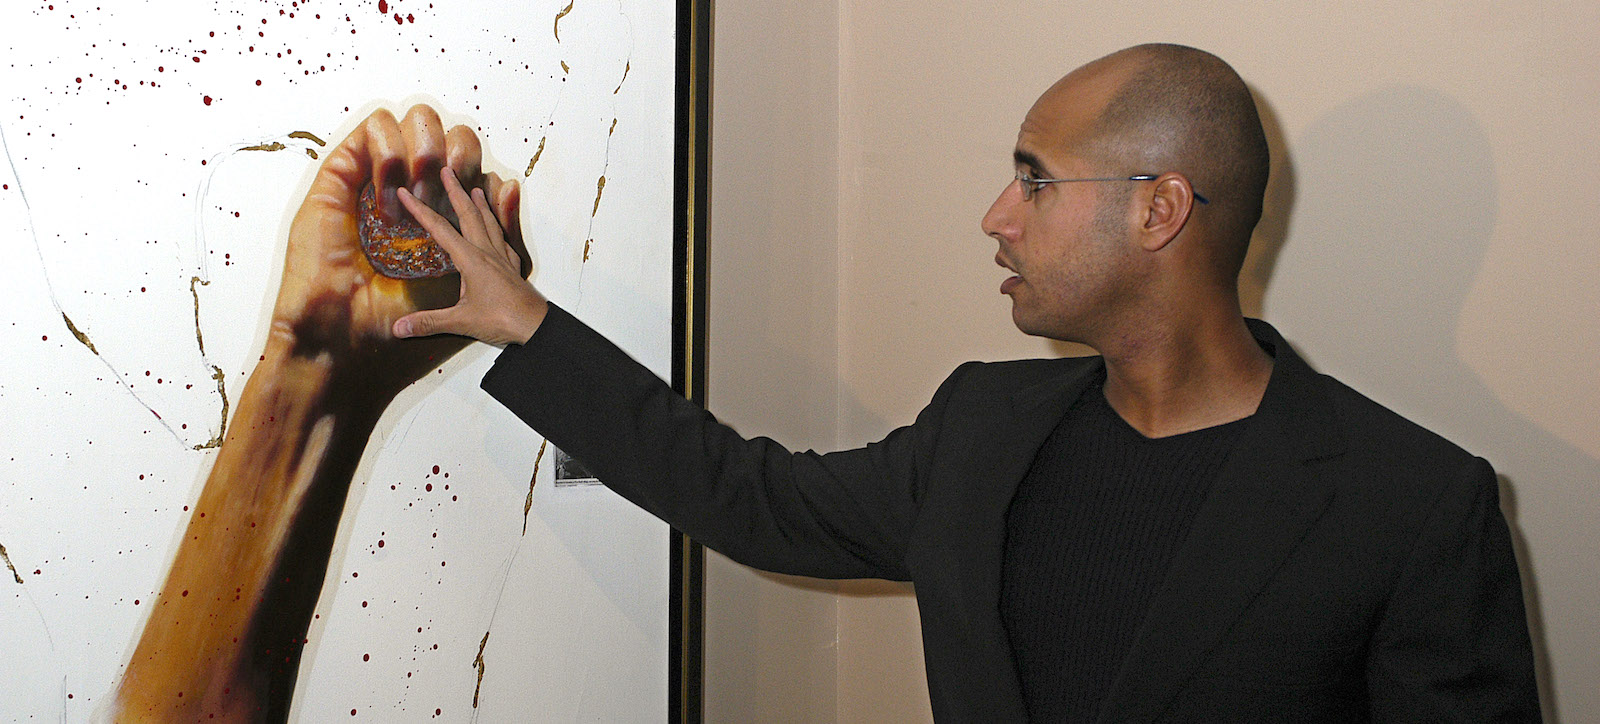 Saif Gaddafi at an art exhibition in Spain, 2004 (Photo: Fernando Camino/Getty)